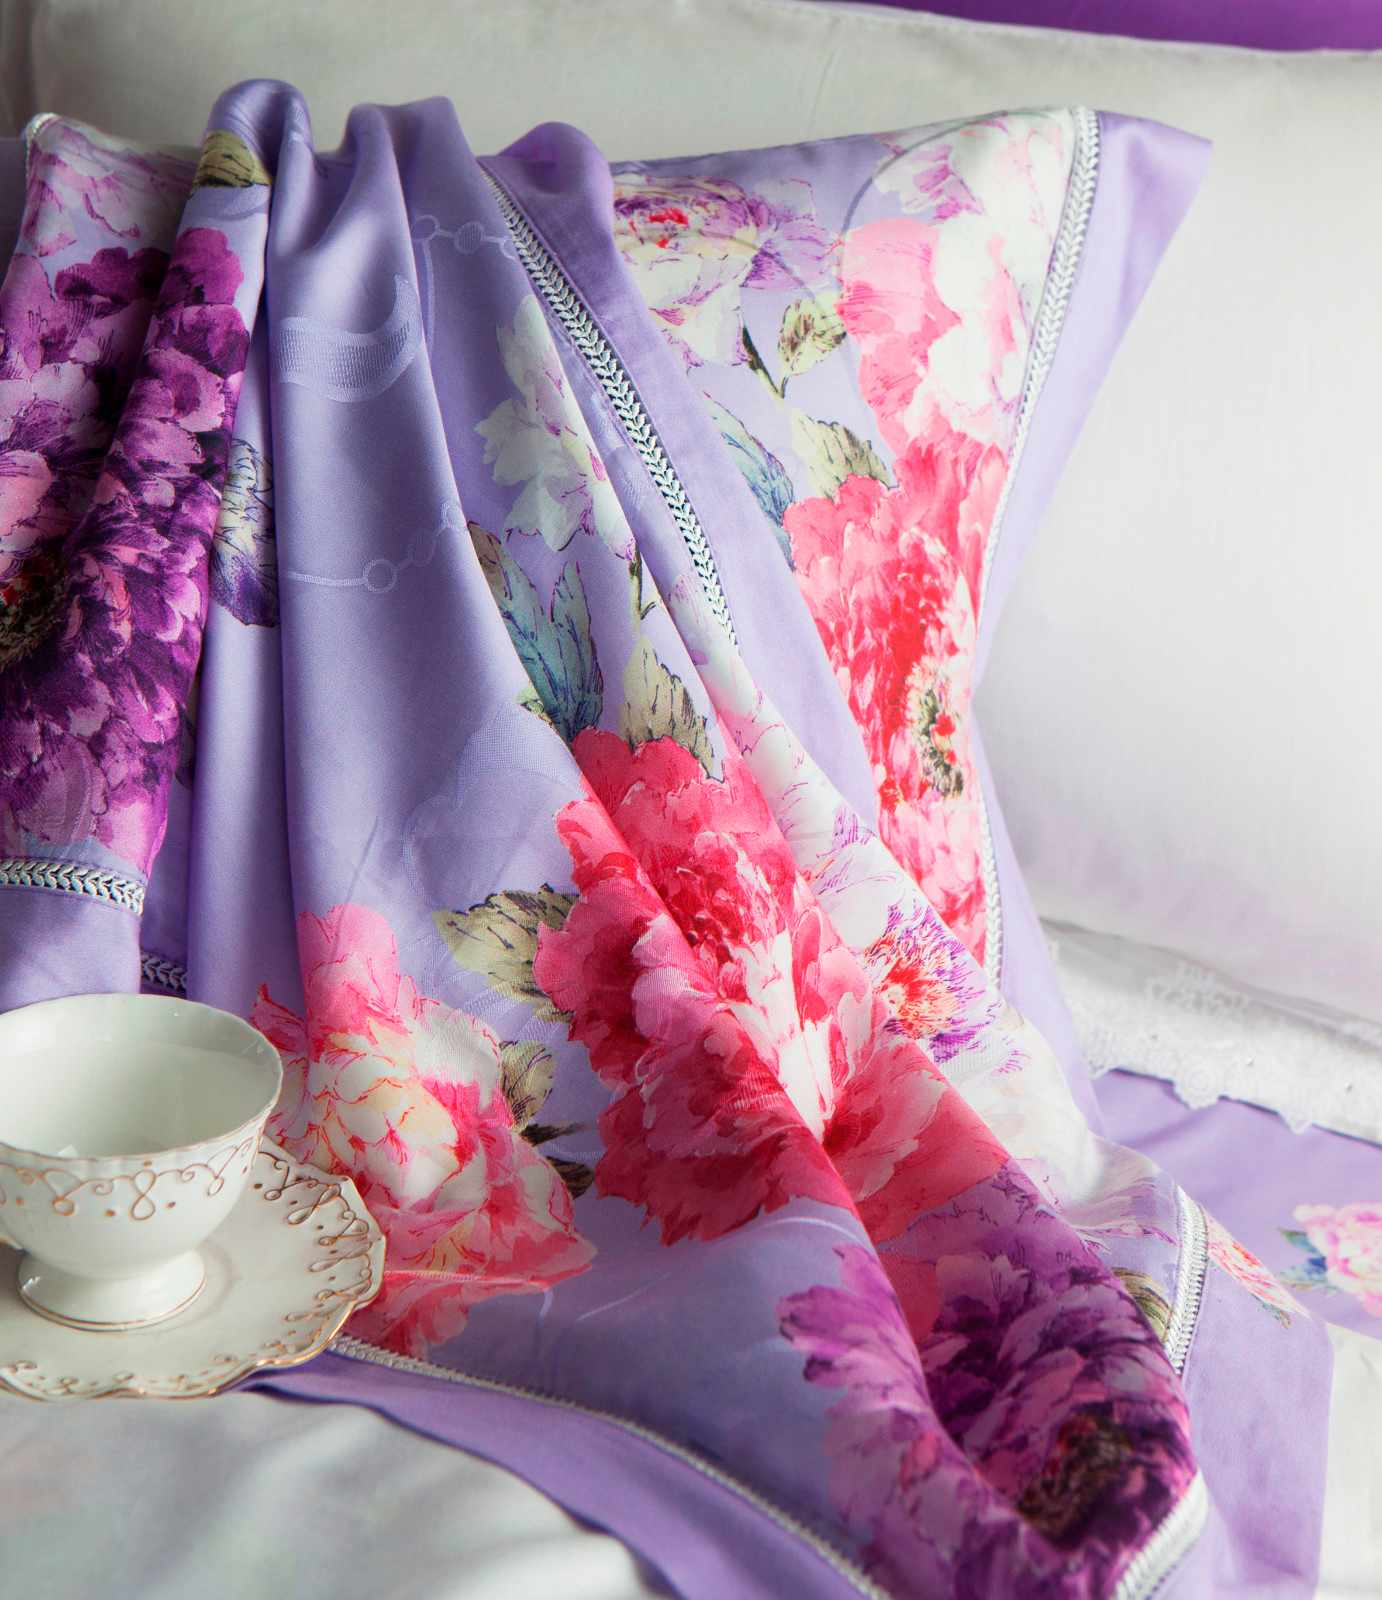 Daphne Peony Patterns Bedding Set  Lyocell and Viscose 6833 Other Material Printed image32